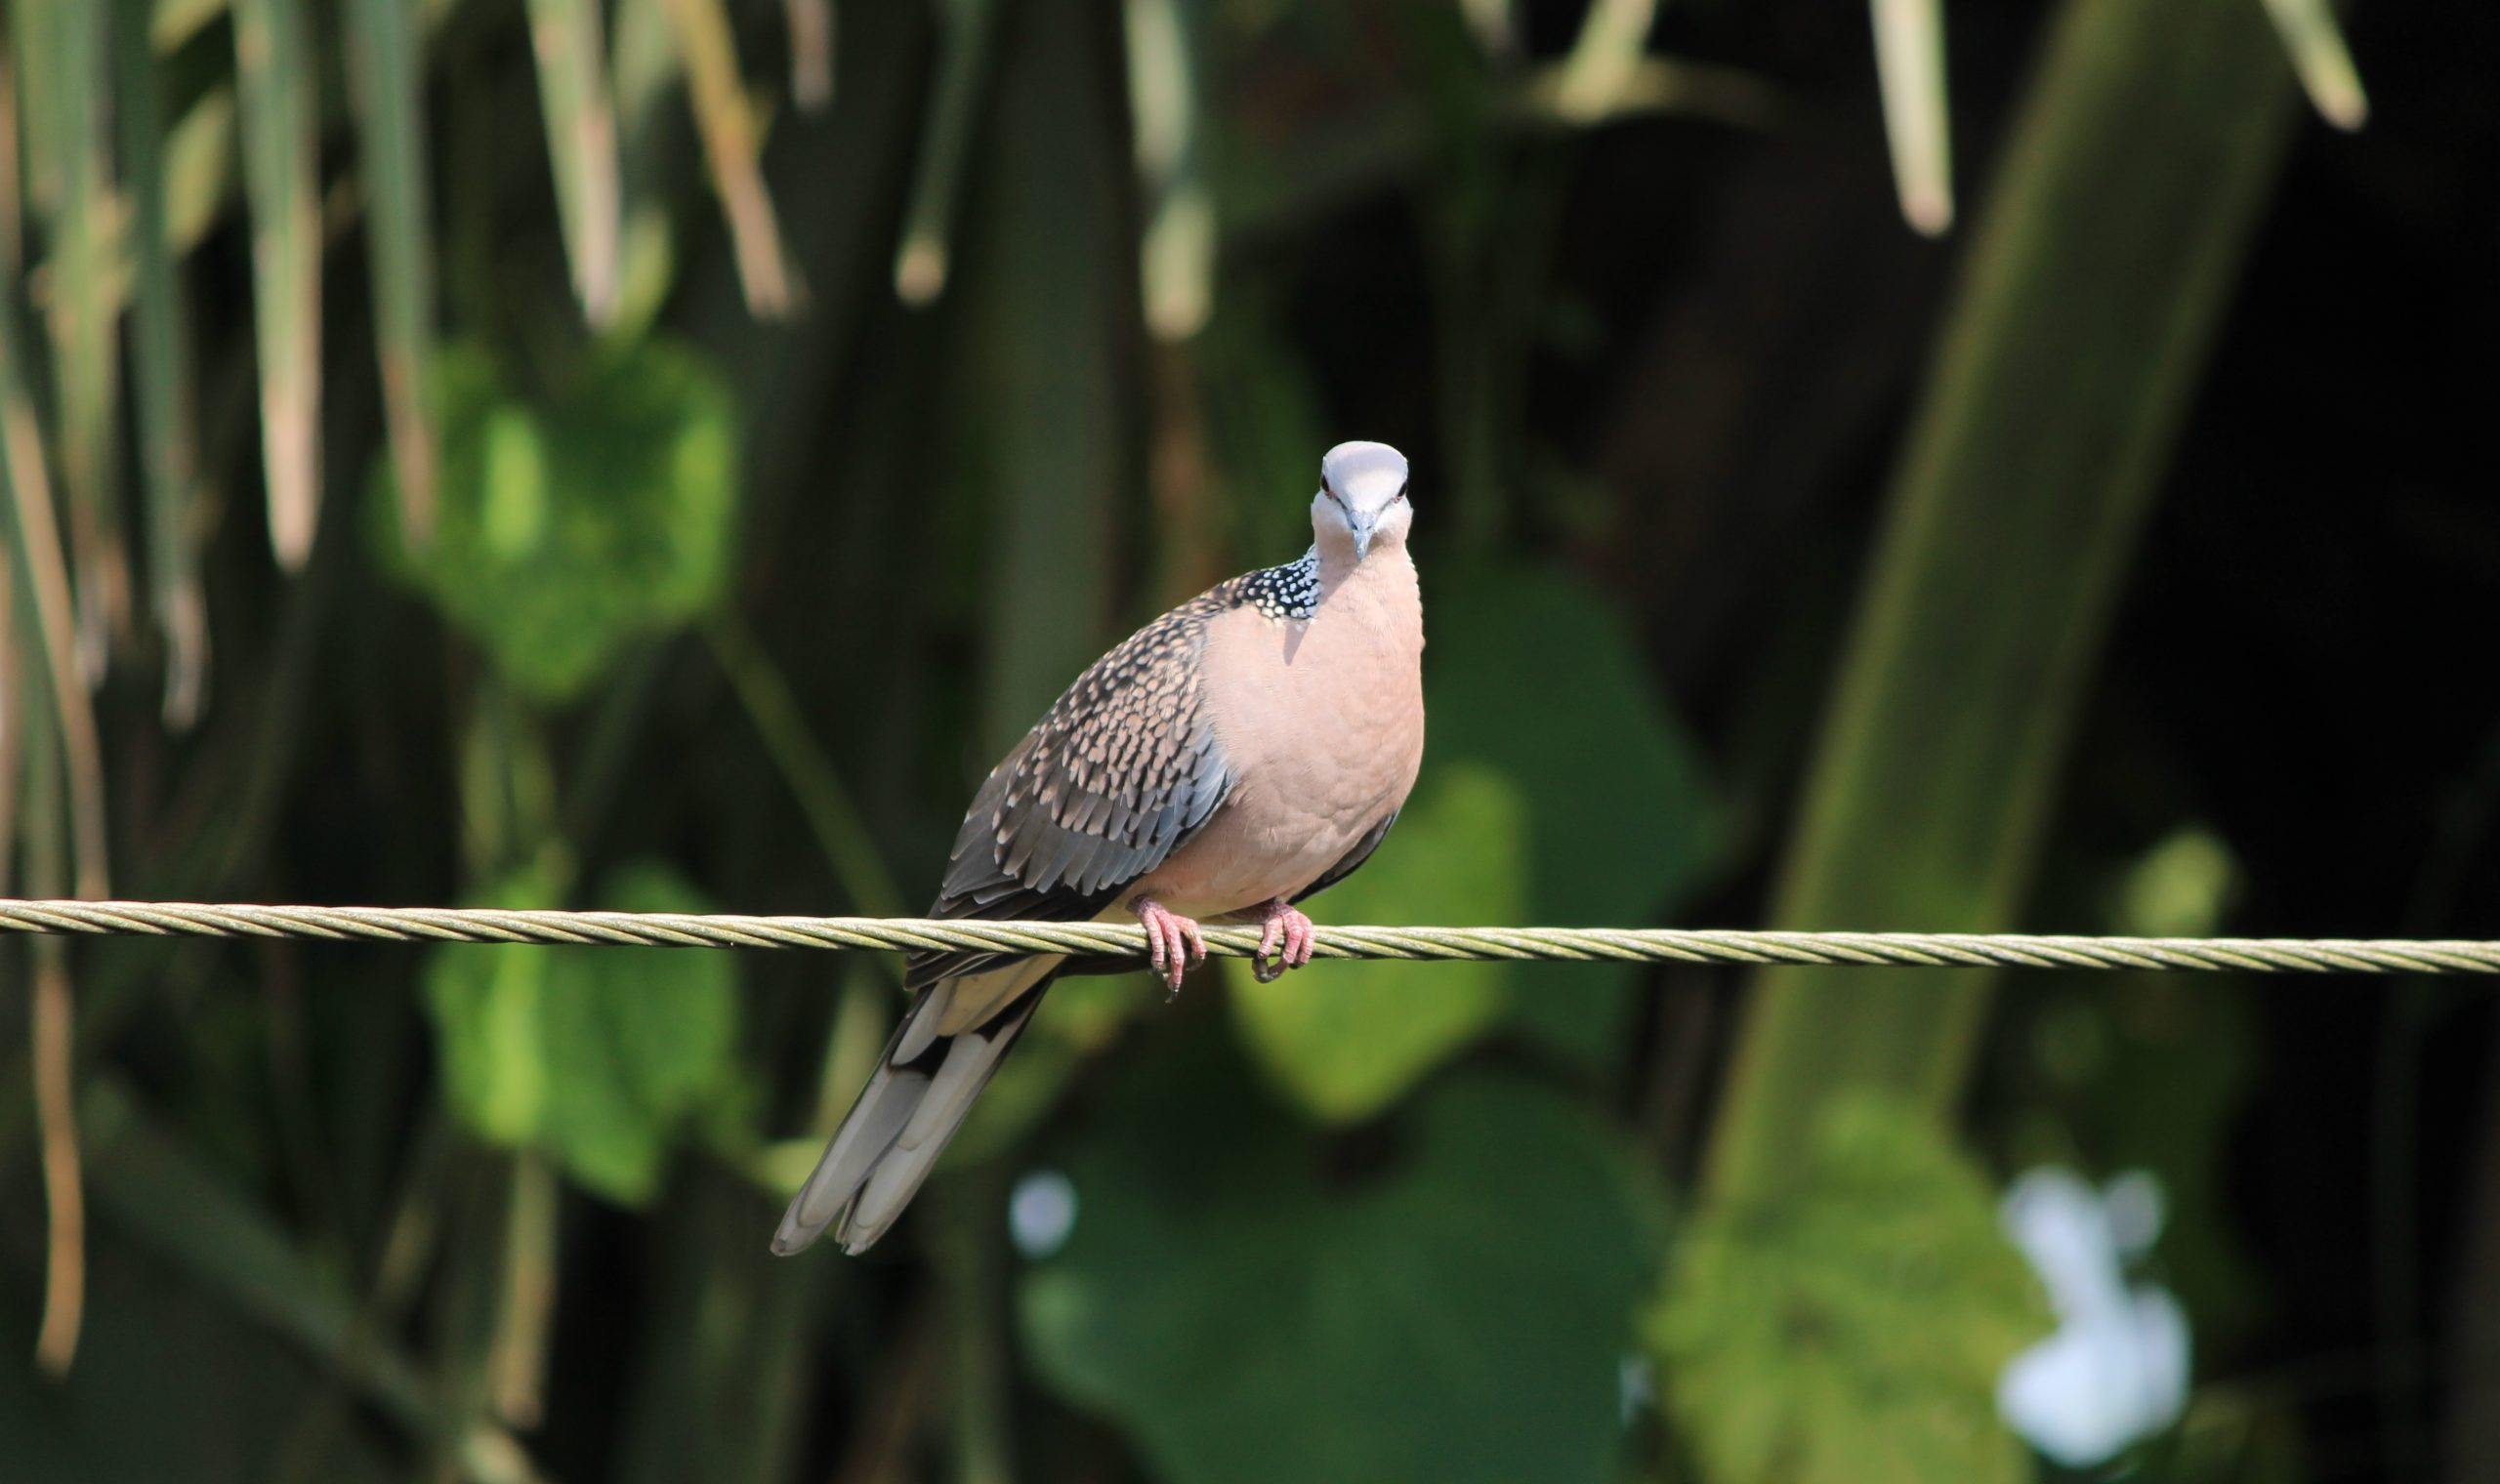 Bird perched on a wire